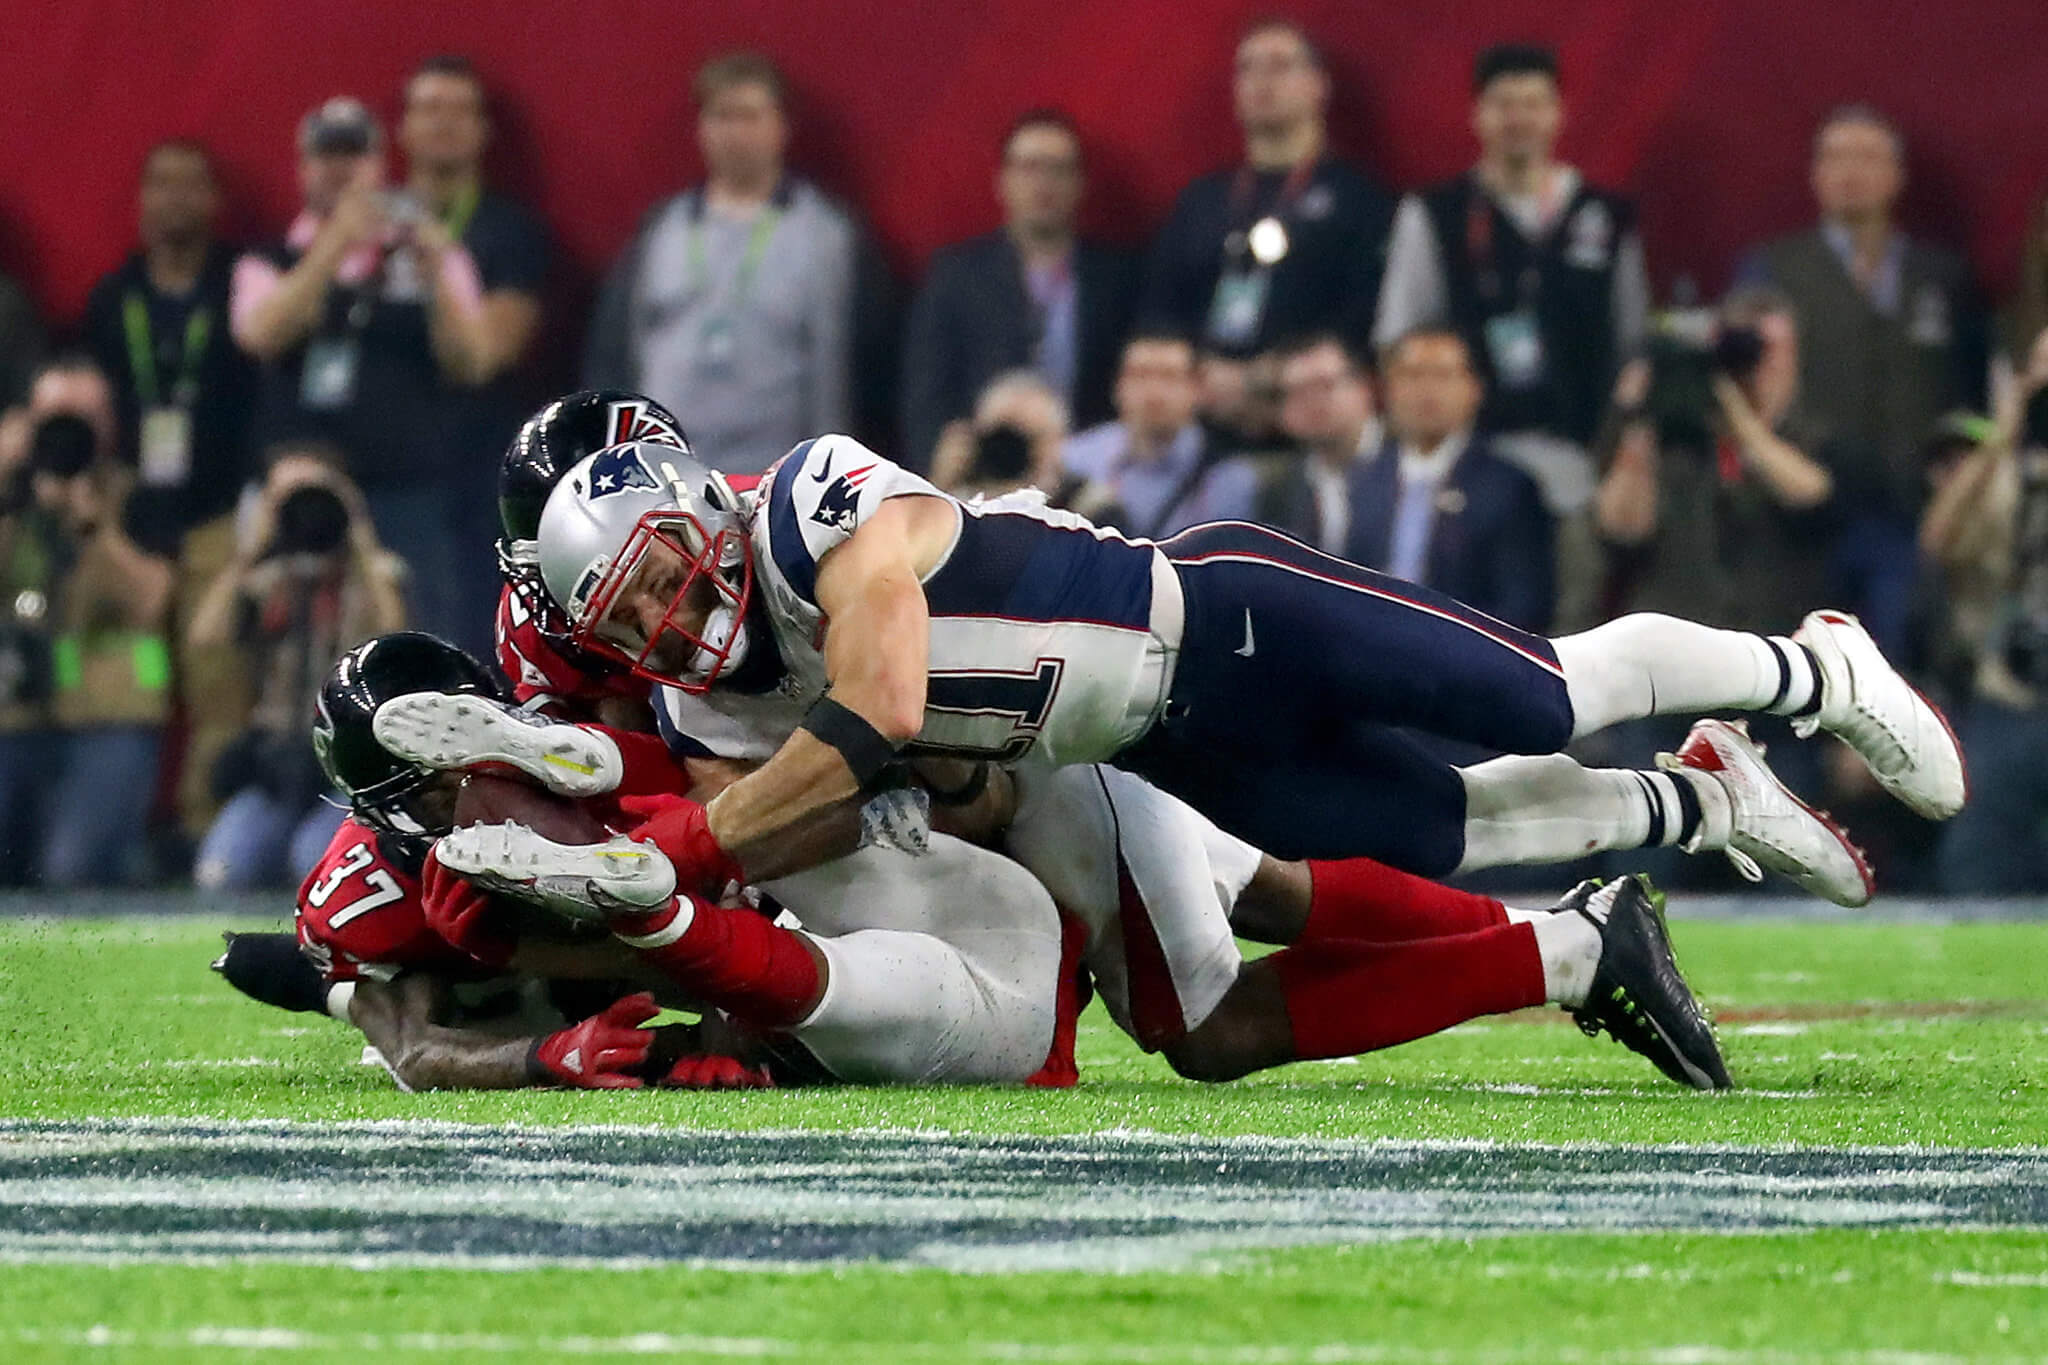 Receiver Julian Edelman improbably kept the ball off the ground long enough to complete a catch that kept the Patriots' game-tying drive alive.